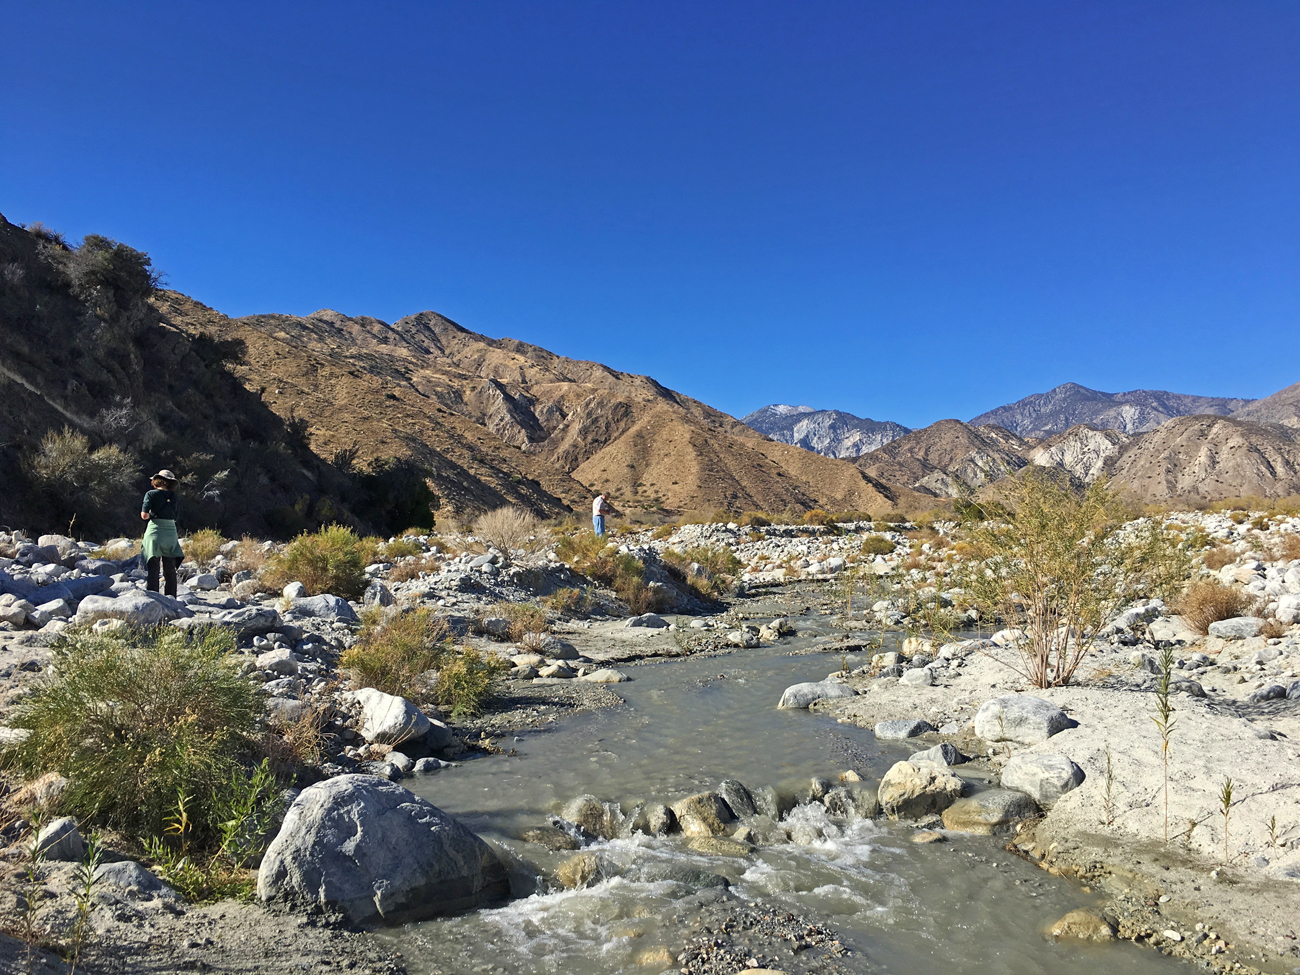 View of Whitewater River on the trail